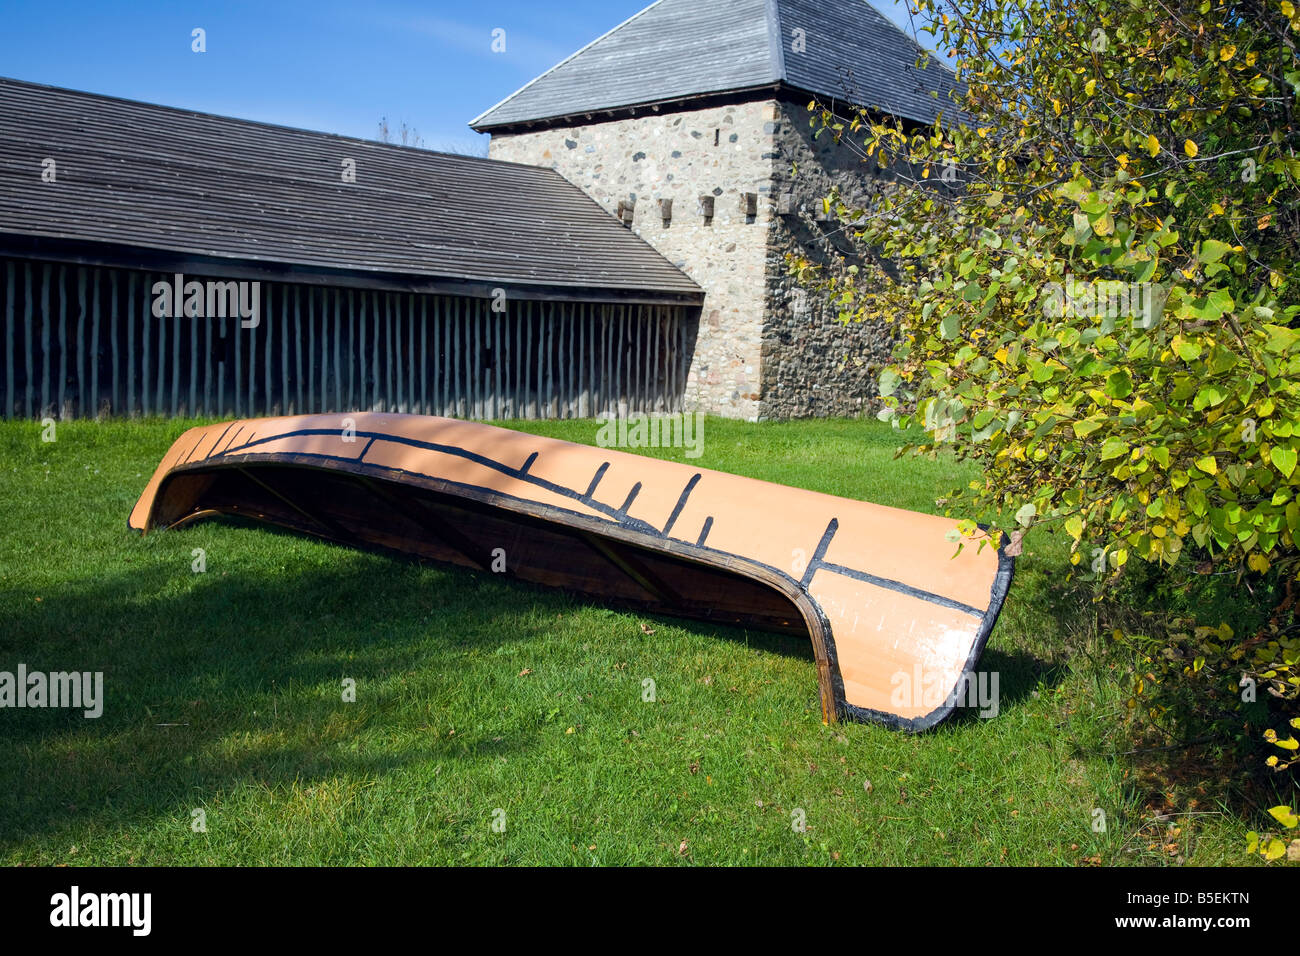 Canoe as used by the early Huron Indians in 1650-1700 on display at Saint-Marie among the Hurons in Midland Ontario - Stock Image